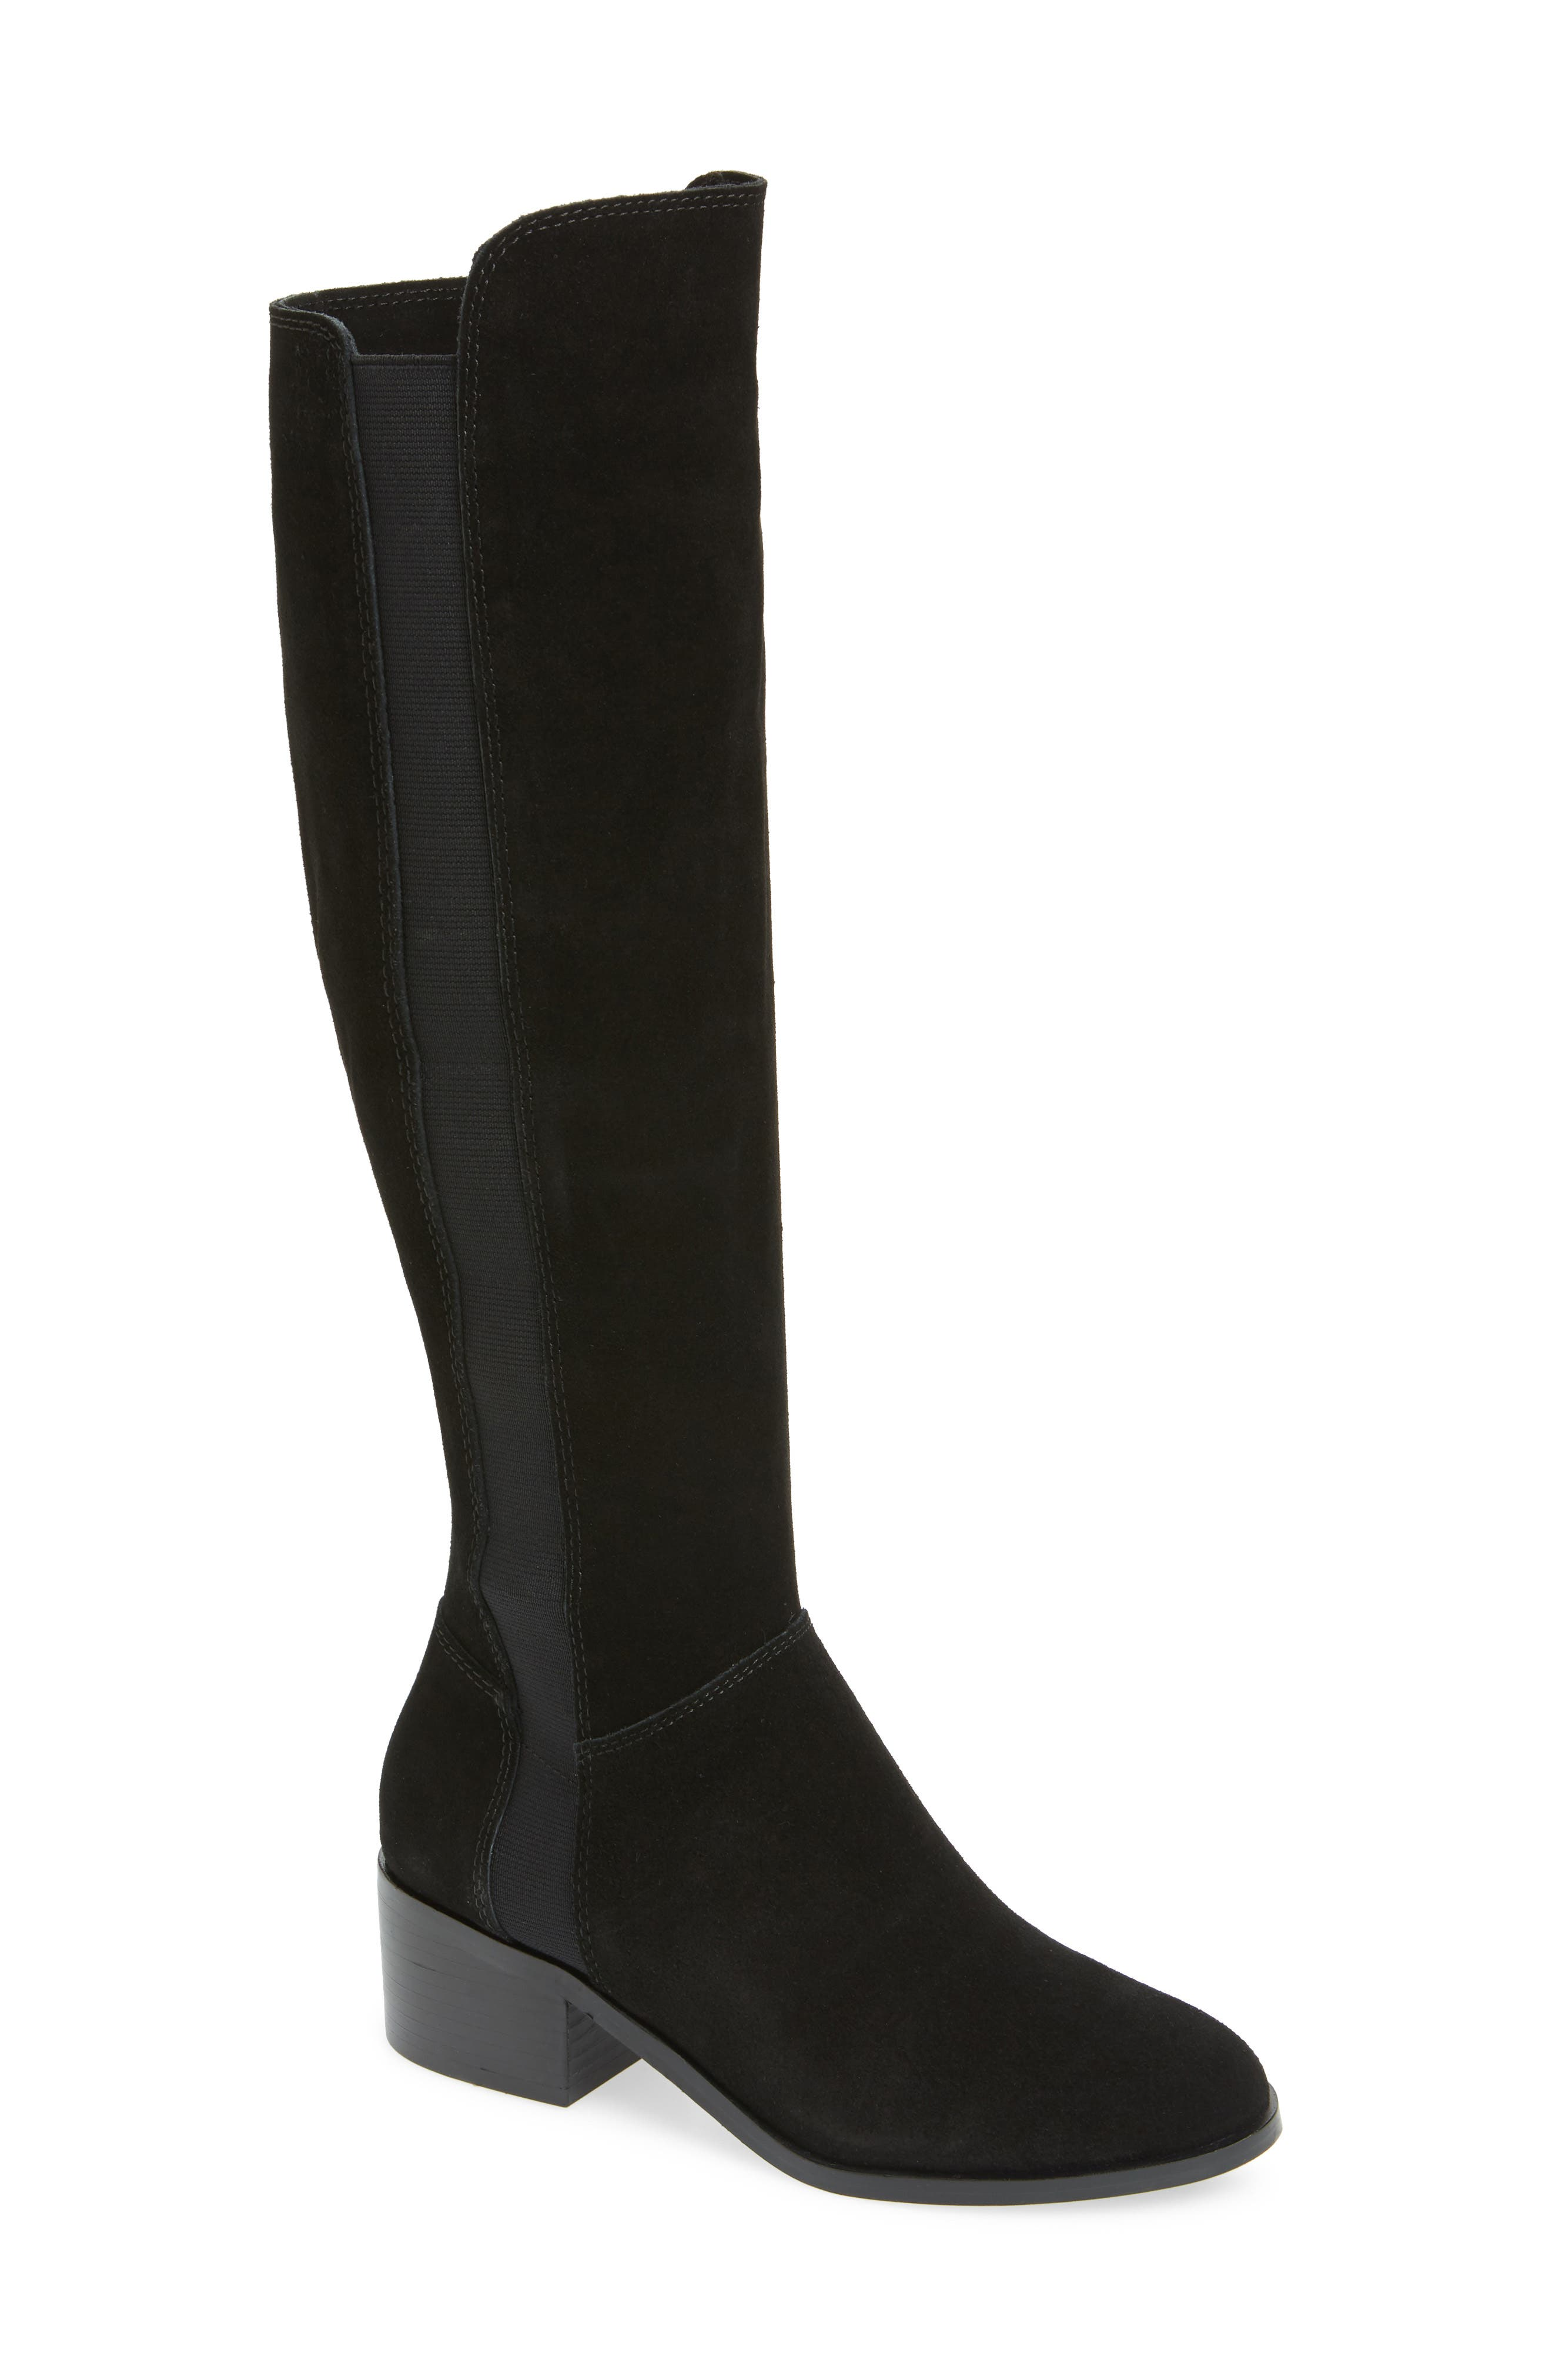 Giselle Over the Knee Boot,                         Main,                         color, BLACK SUEDE